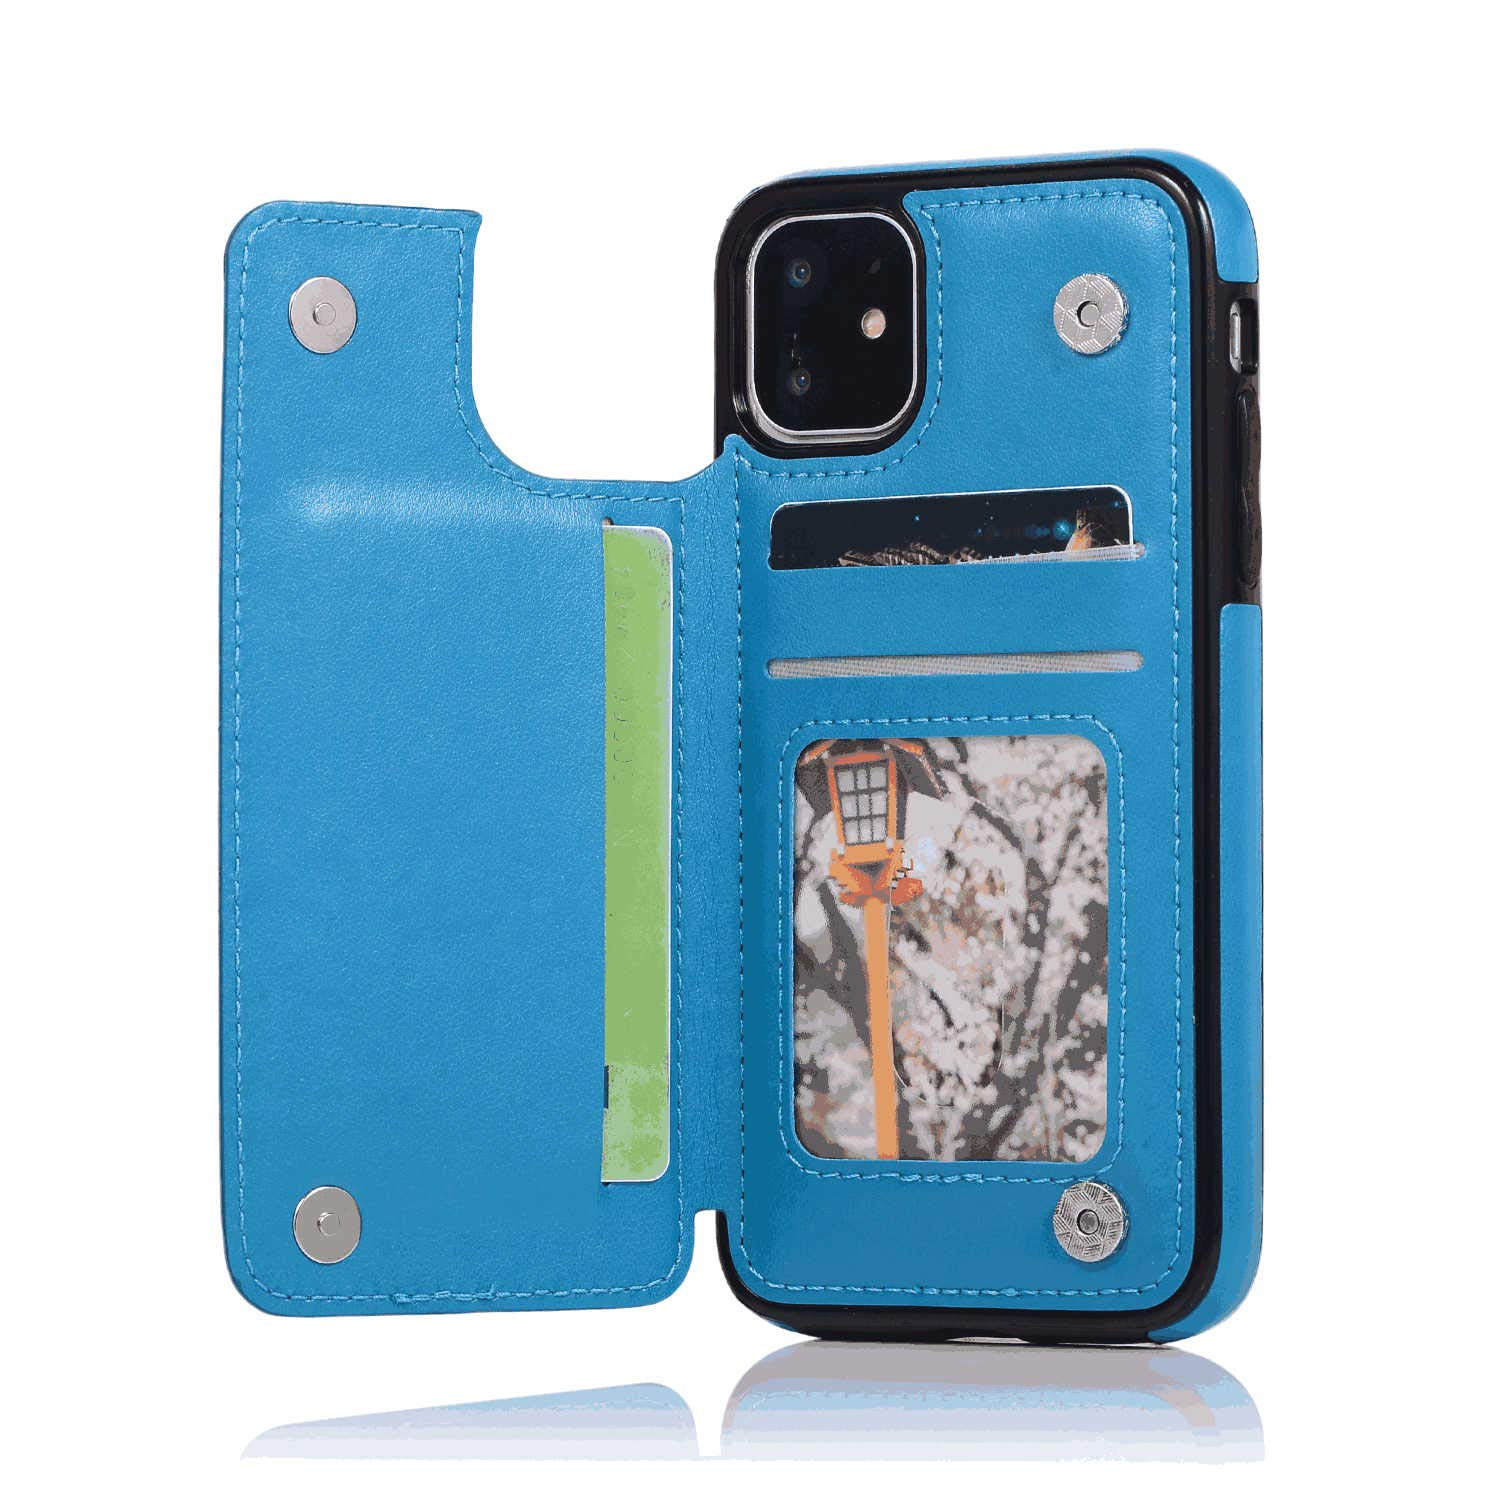 Cover for Leather Kickstand Extra-Shockproof Business Card Holders Cell Phone Cover Flip Cover Samsung Galaxy S9 Plus Flip Case